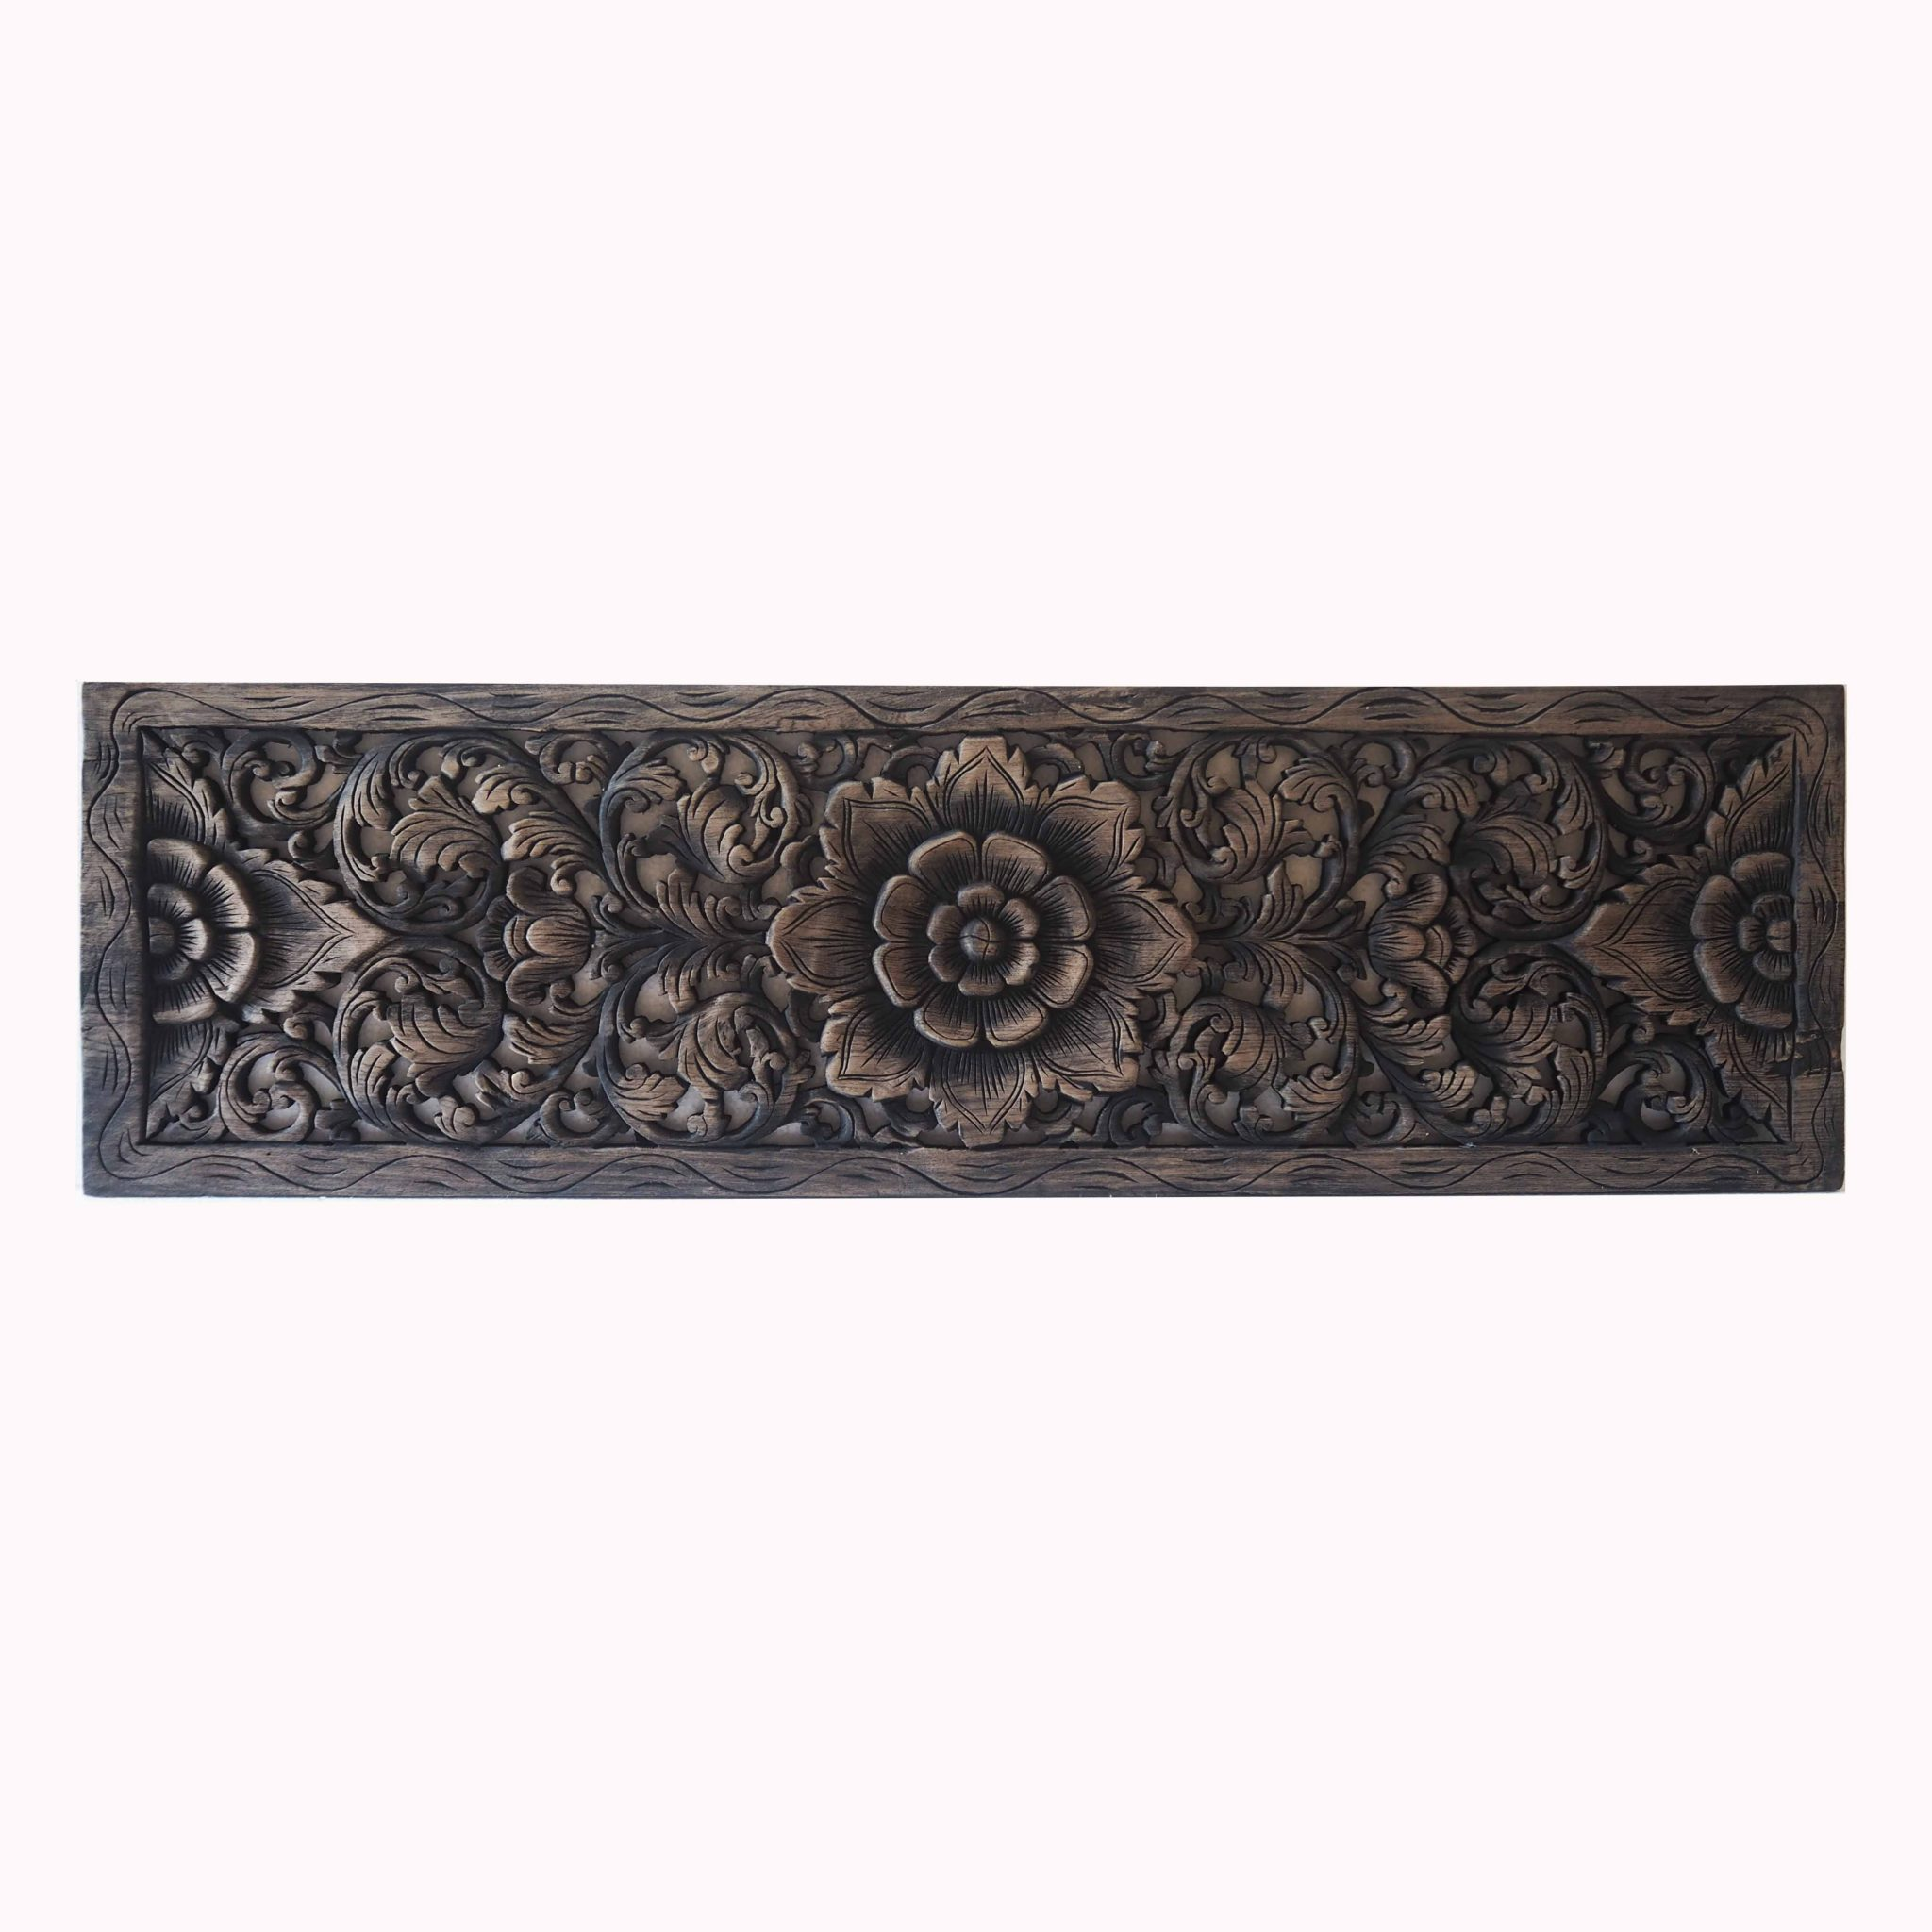 Wall Decor Wood Panel Buy Thai Lotus Wood Carving Wall Art Panel Online